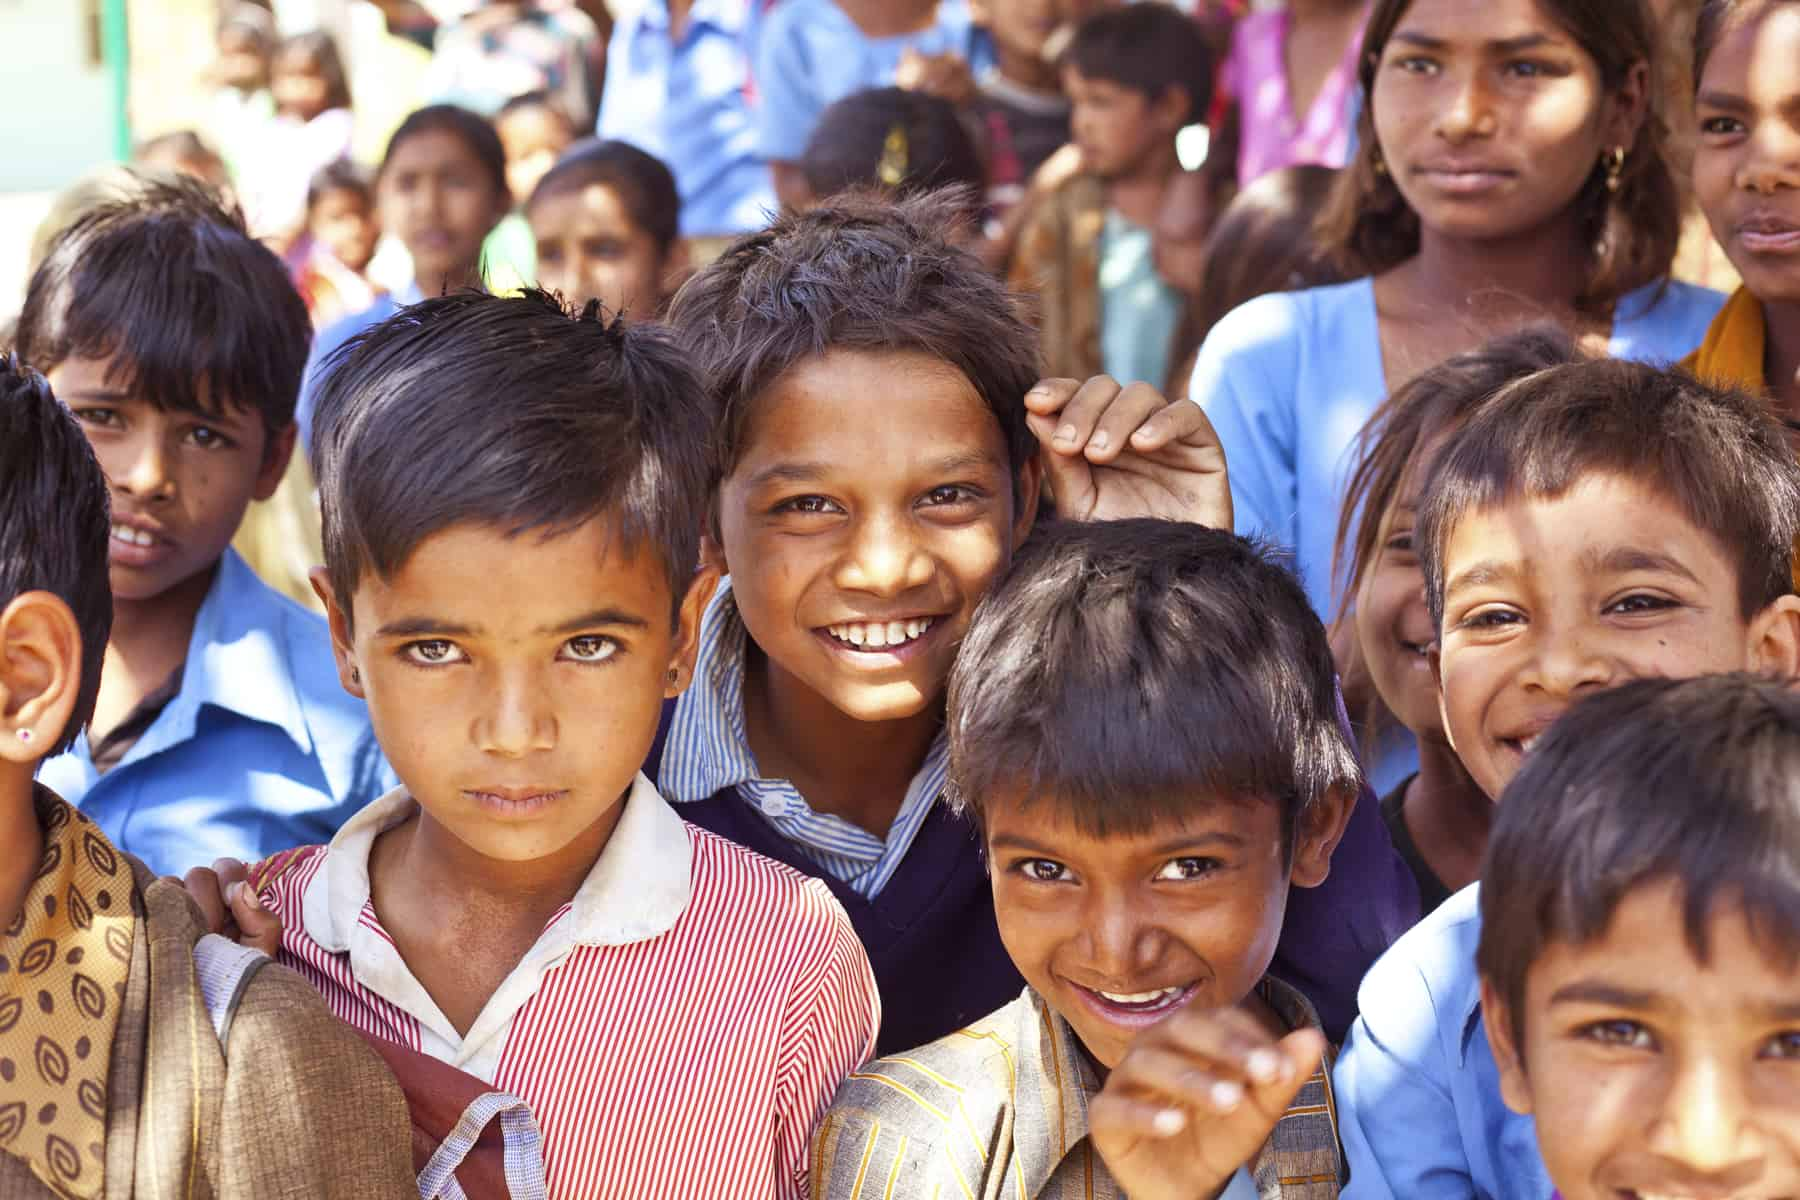 group of indian school children smiling at a camera